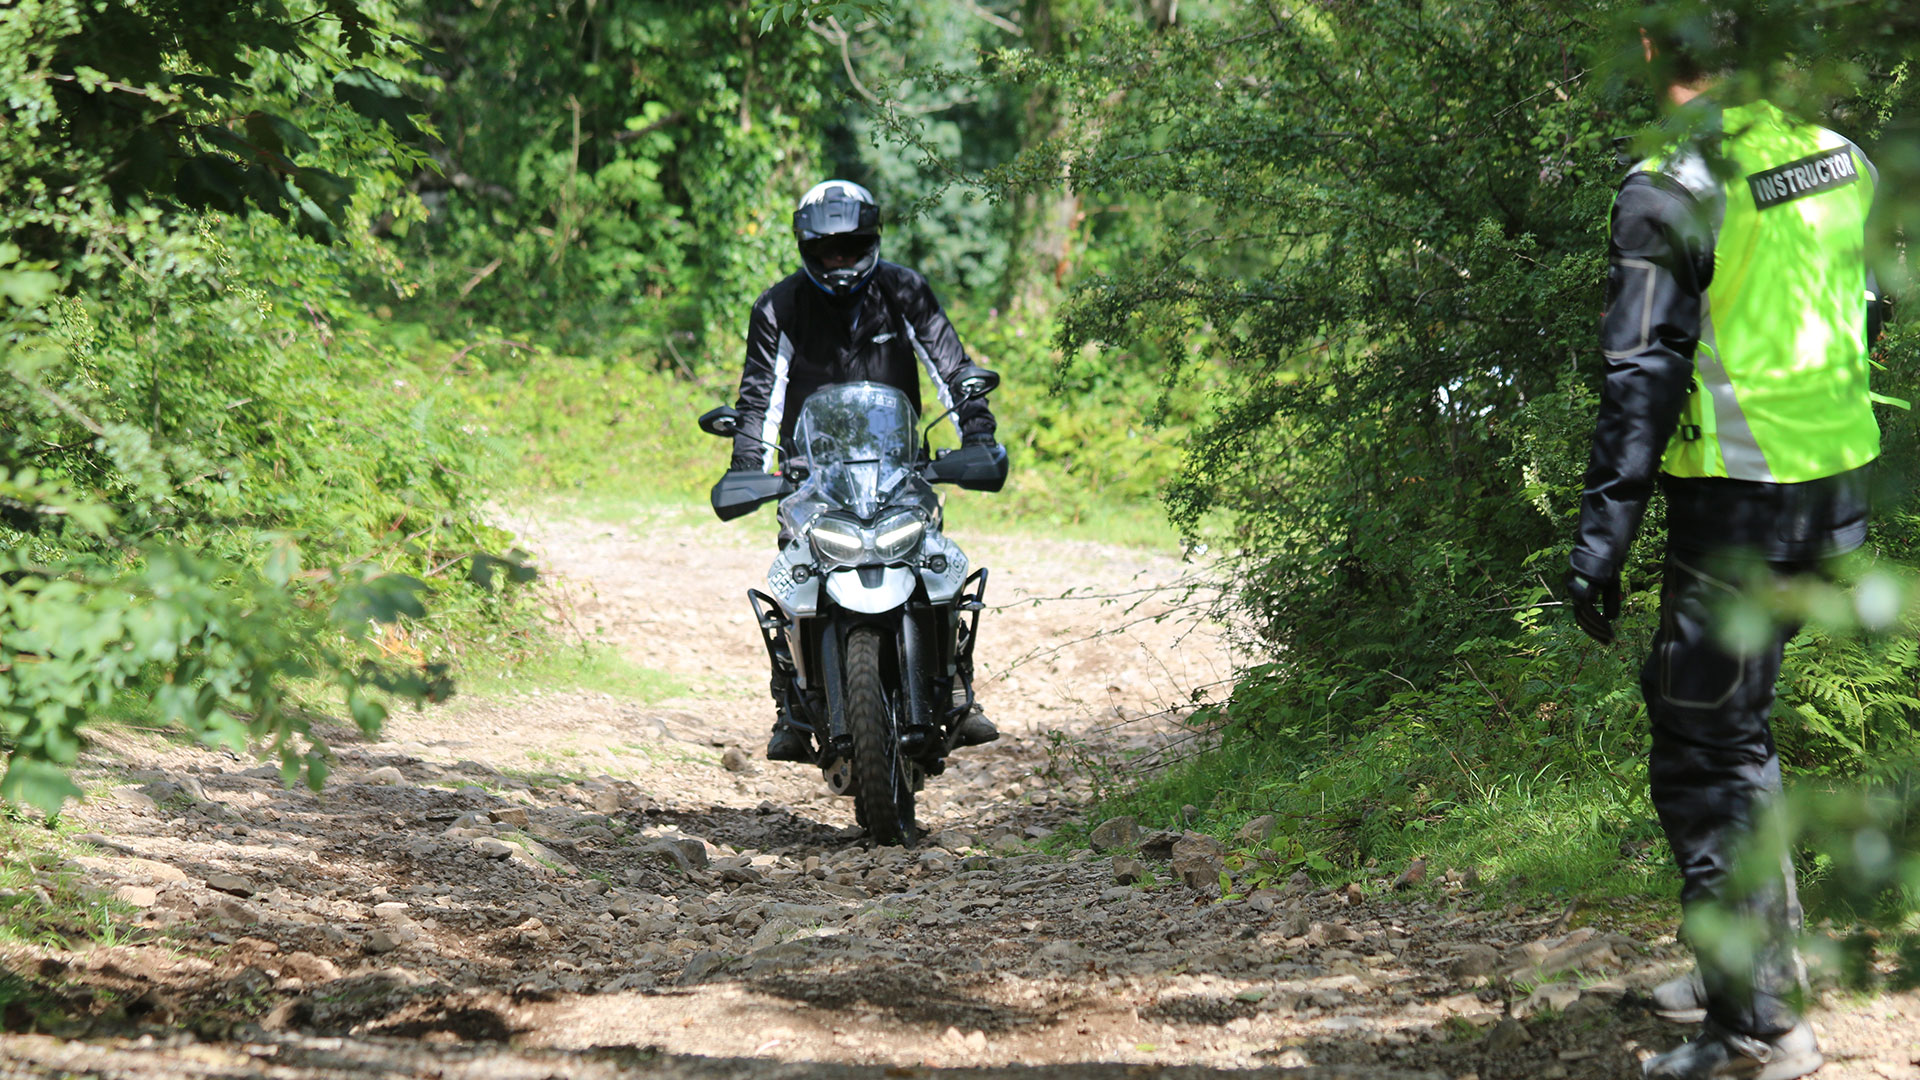 Rider receiving training on Triumph Tiger 800